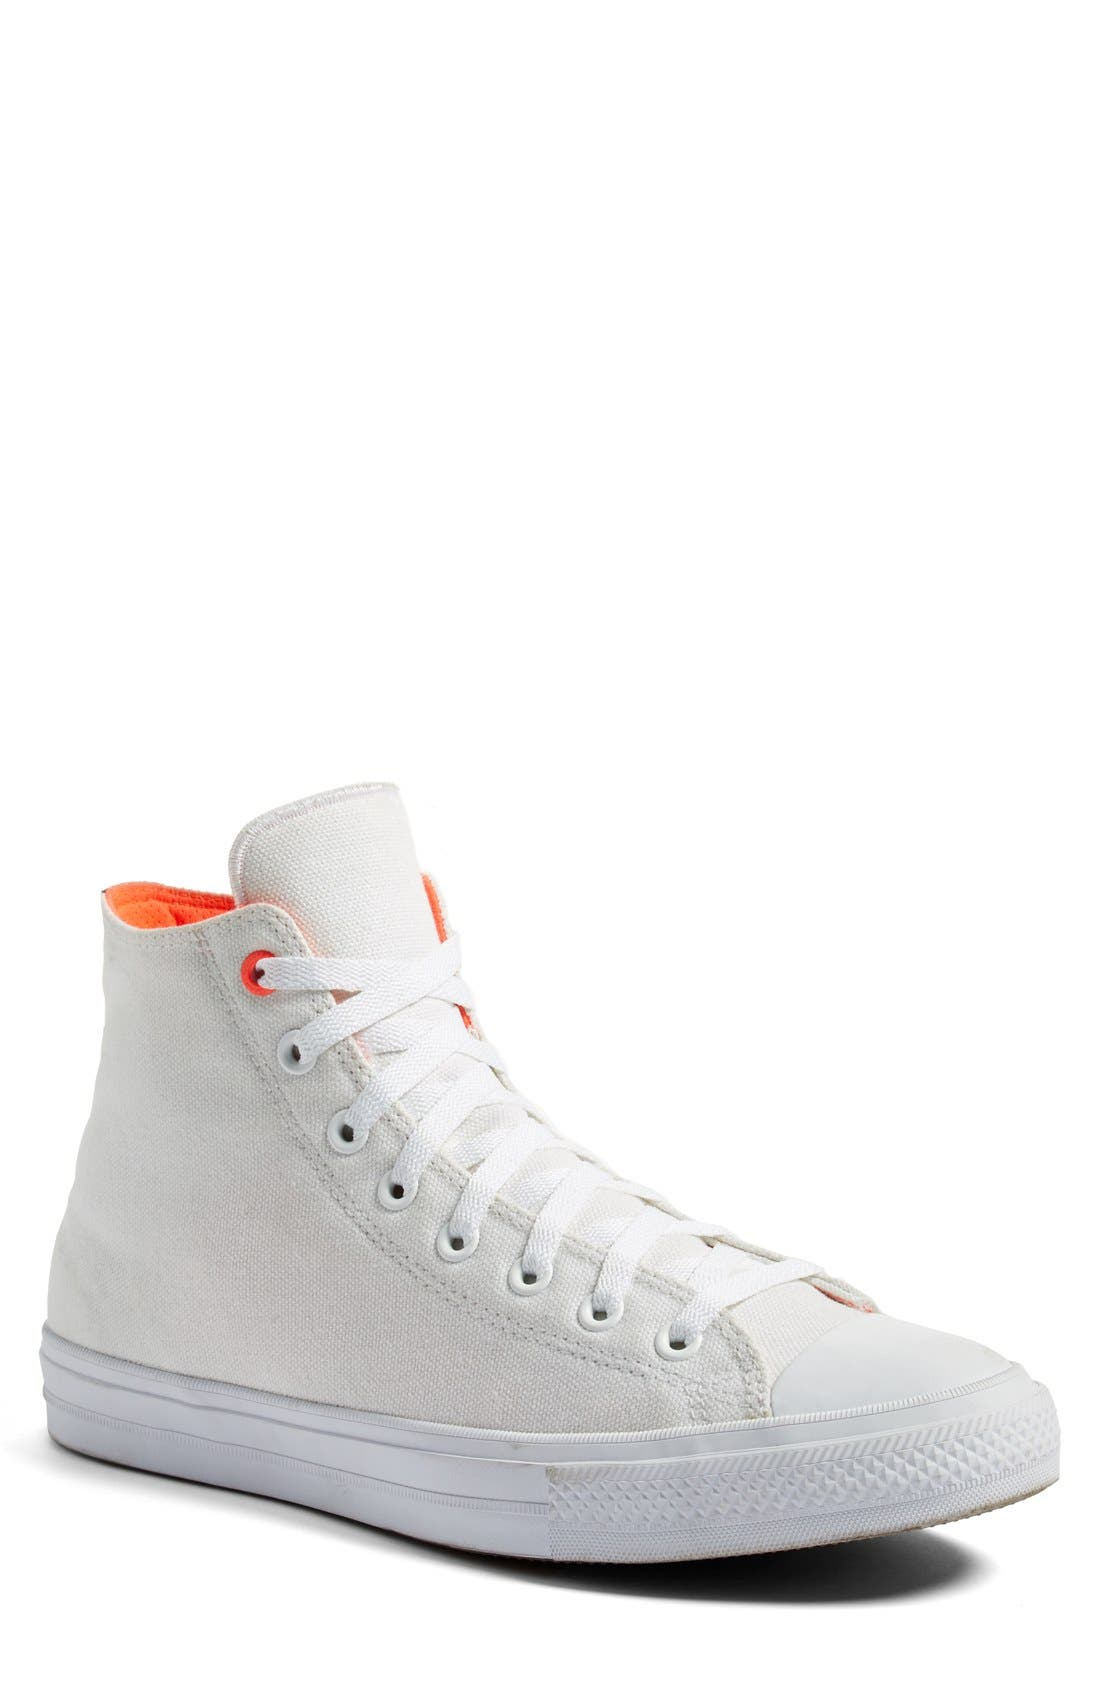 Main Image - Converse Chuck Taylor® All Star® II 'Shield' Water Repellent High Top Sneaker (Women)